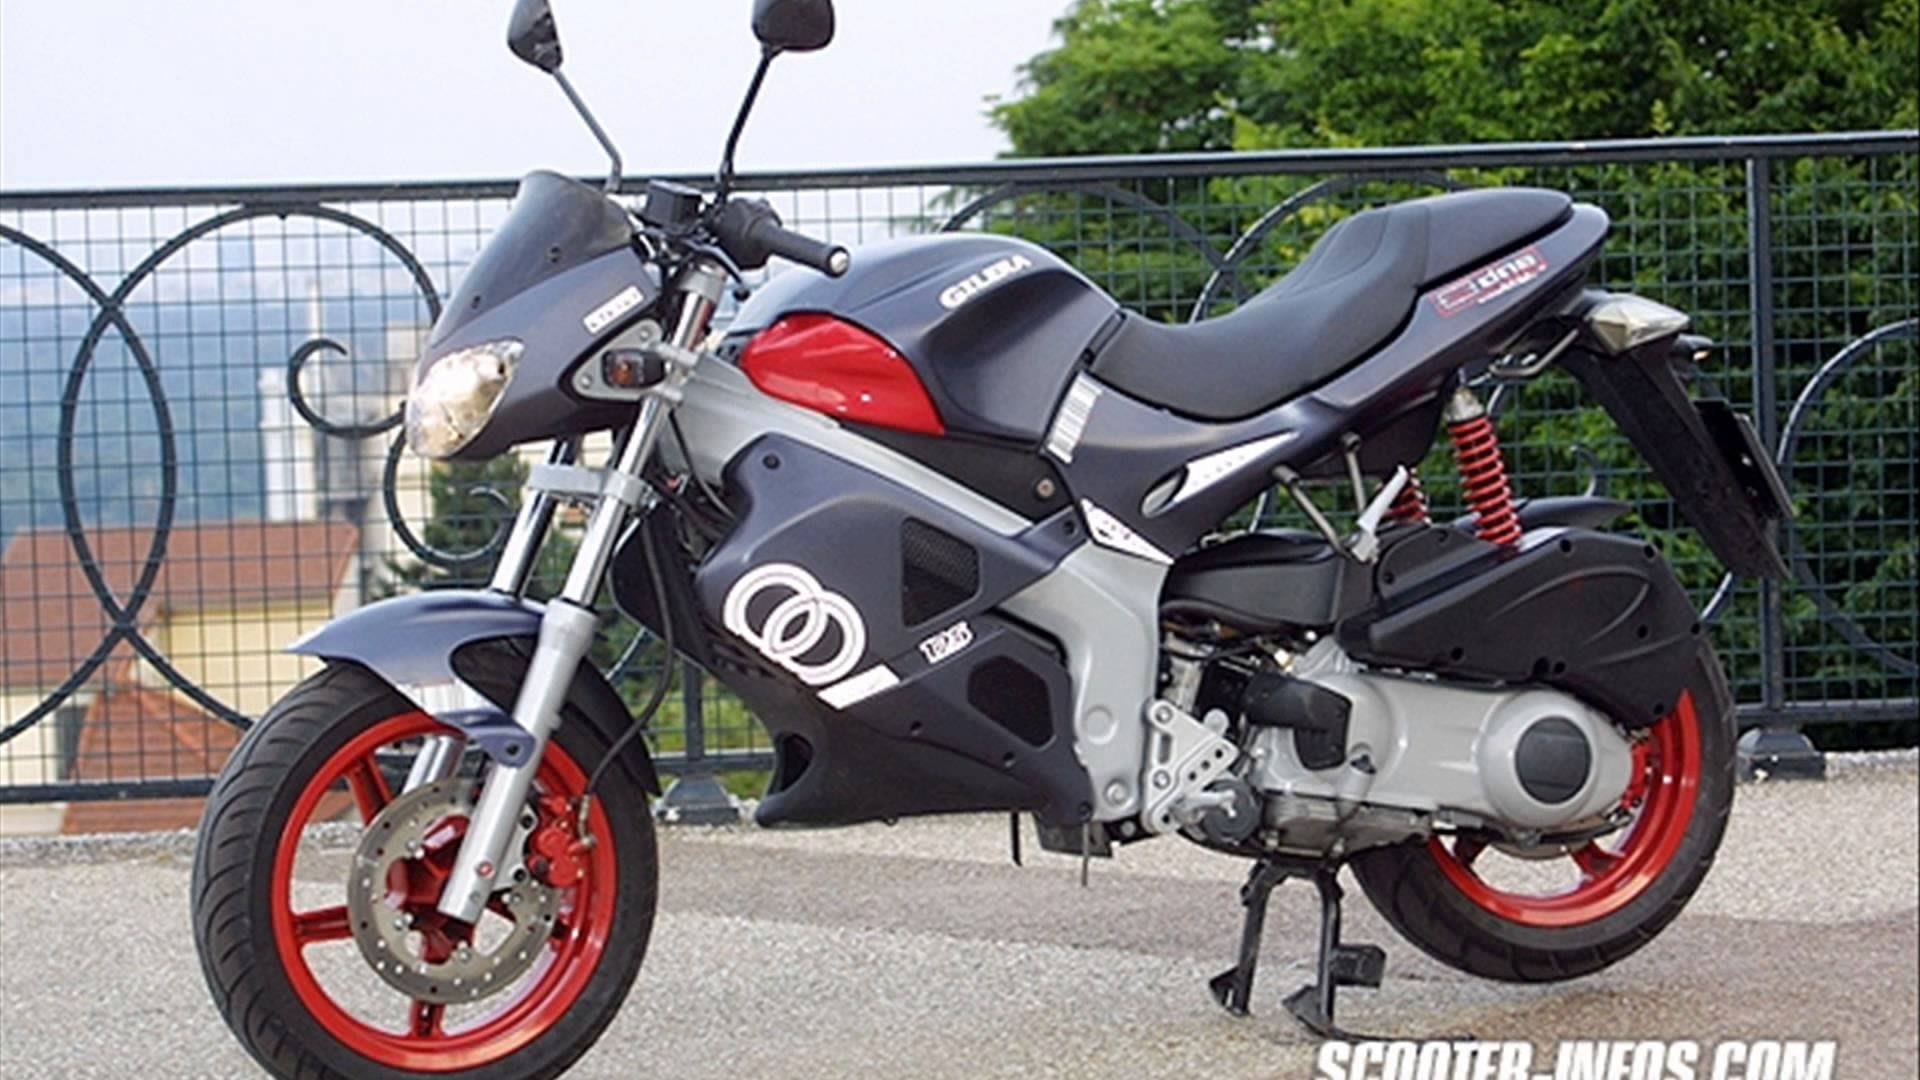 Gilera DNA 125 2001 images #73775